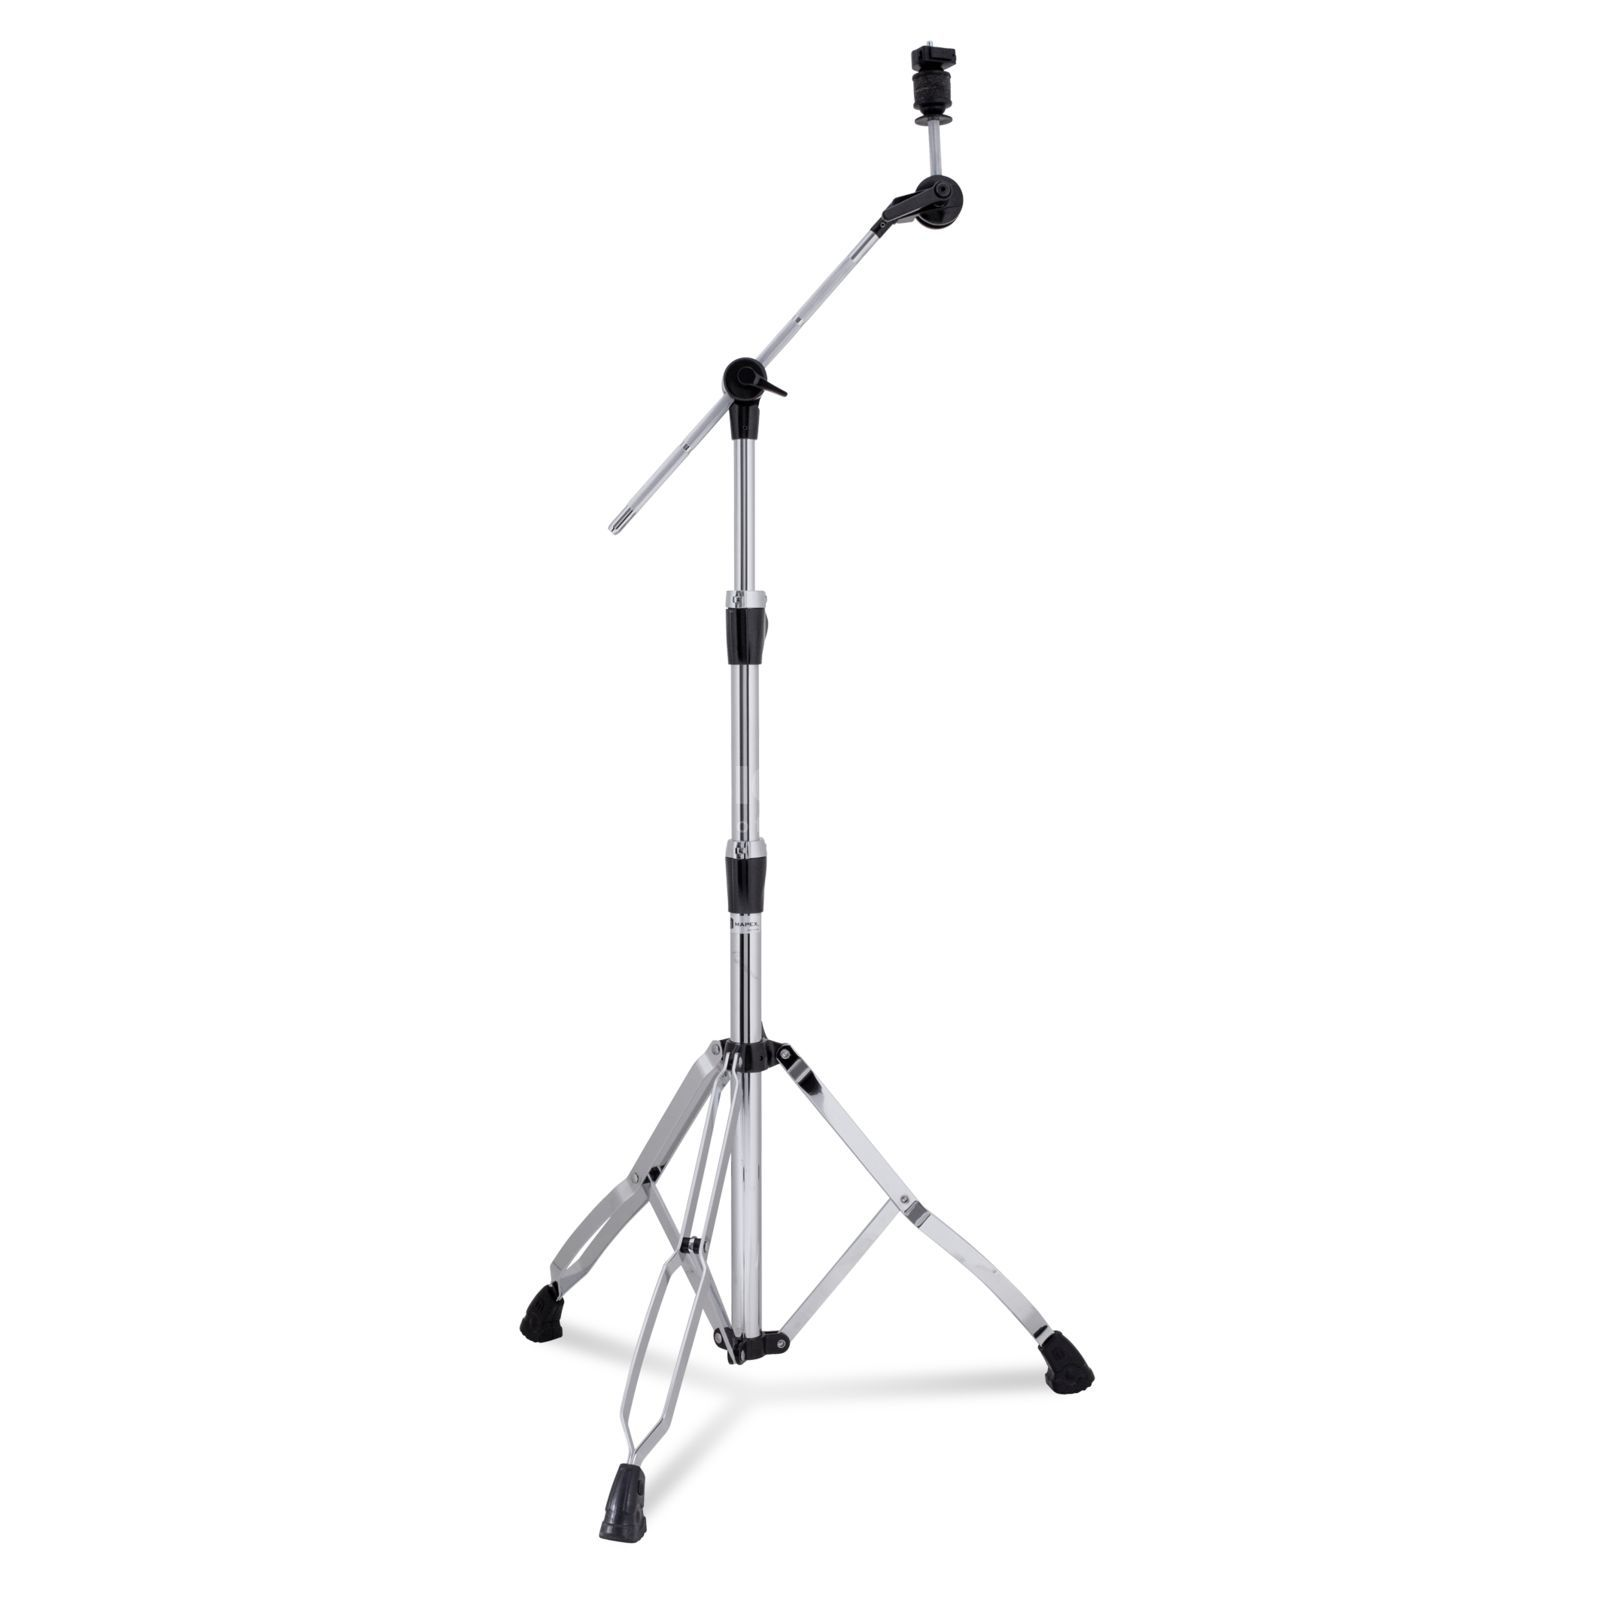 Mapex Cymbal Boom Stand ArmoryB800 Chrome/Black Produktbillede